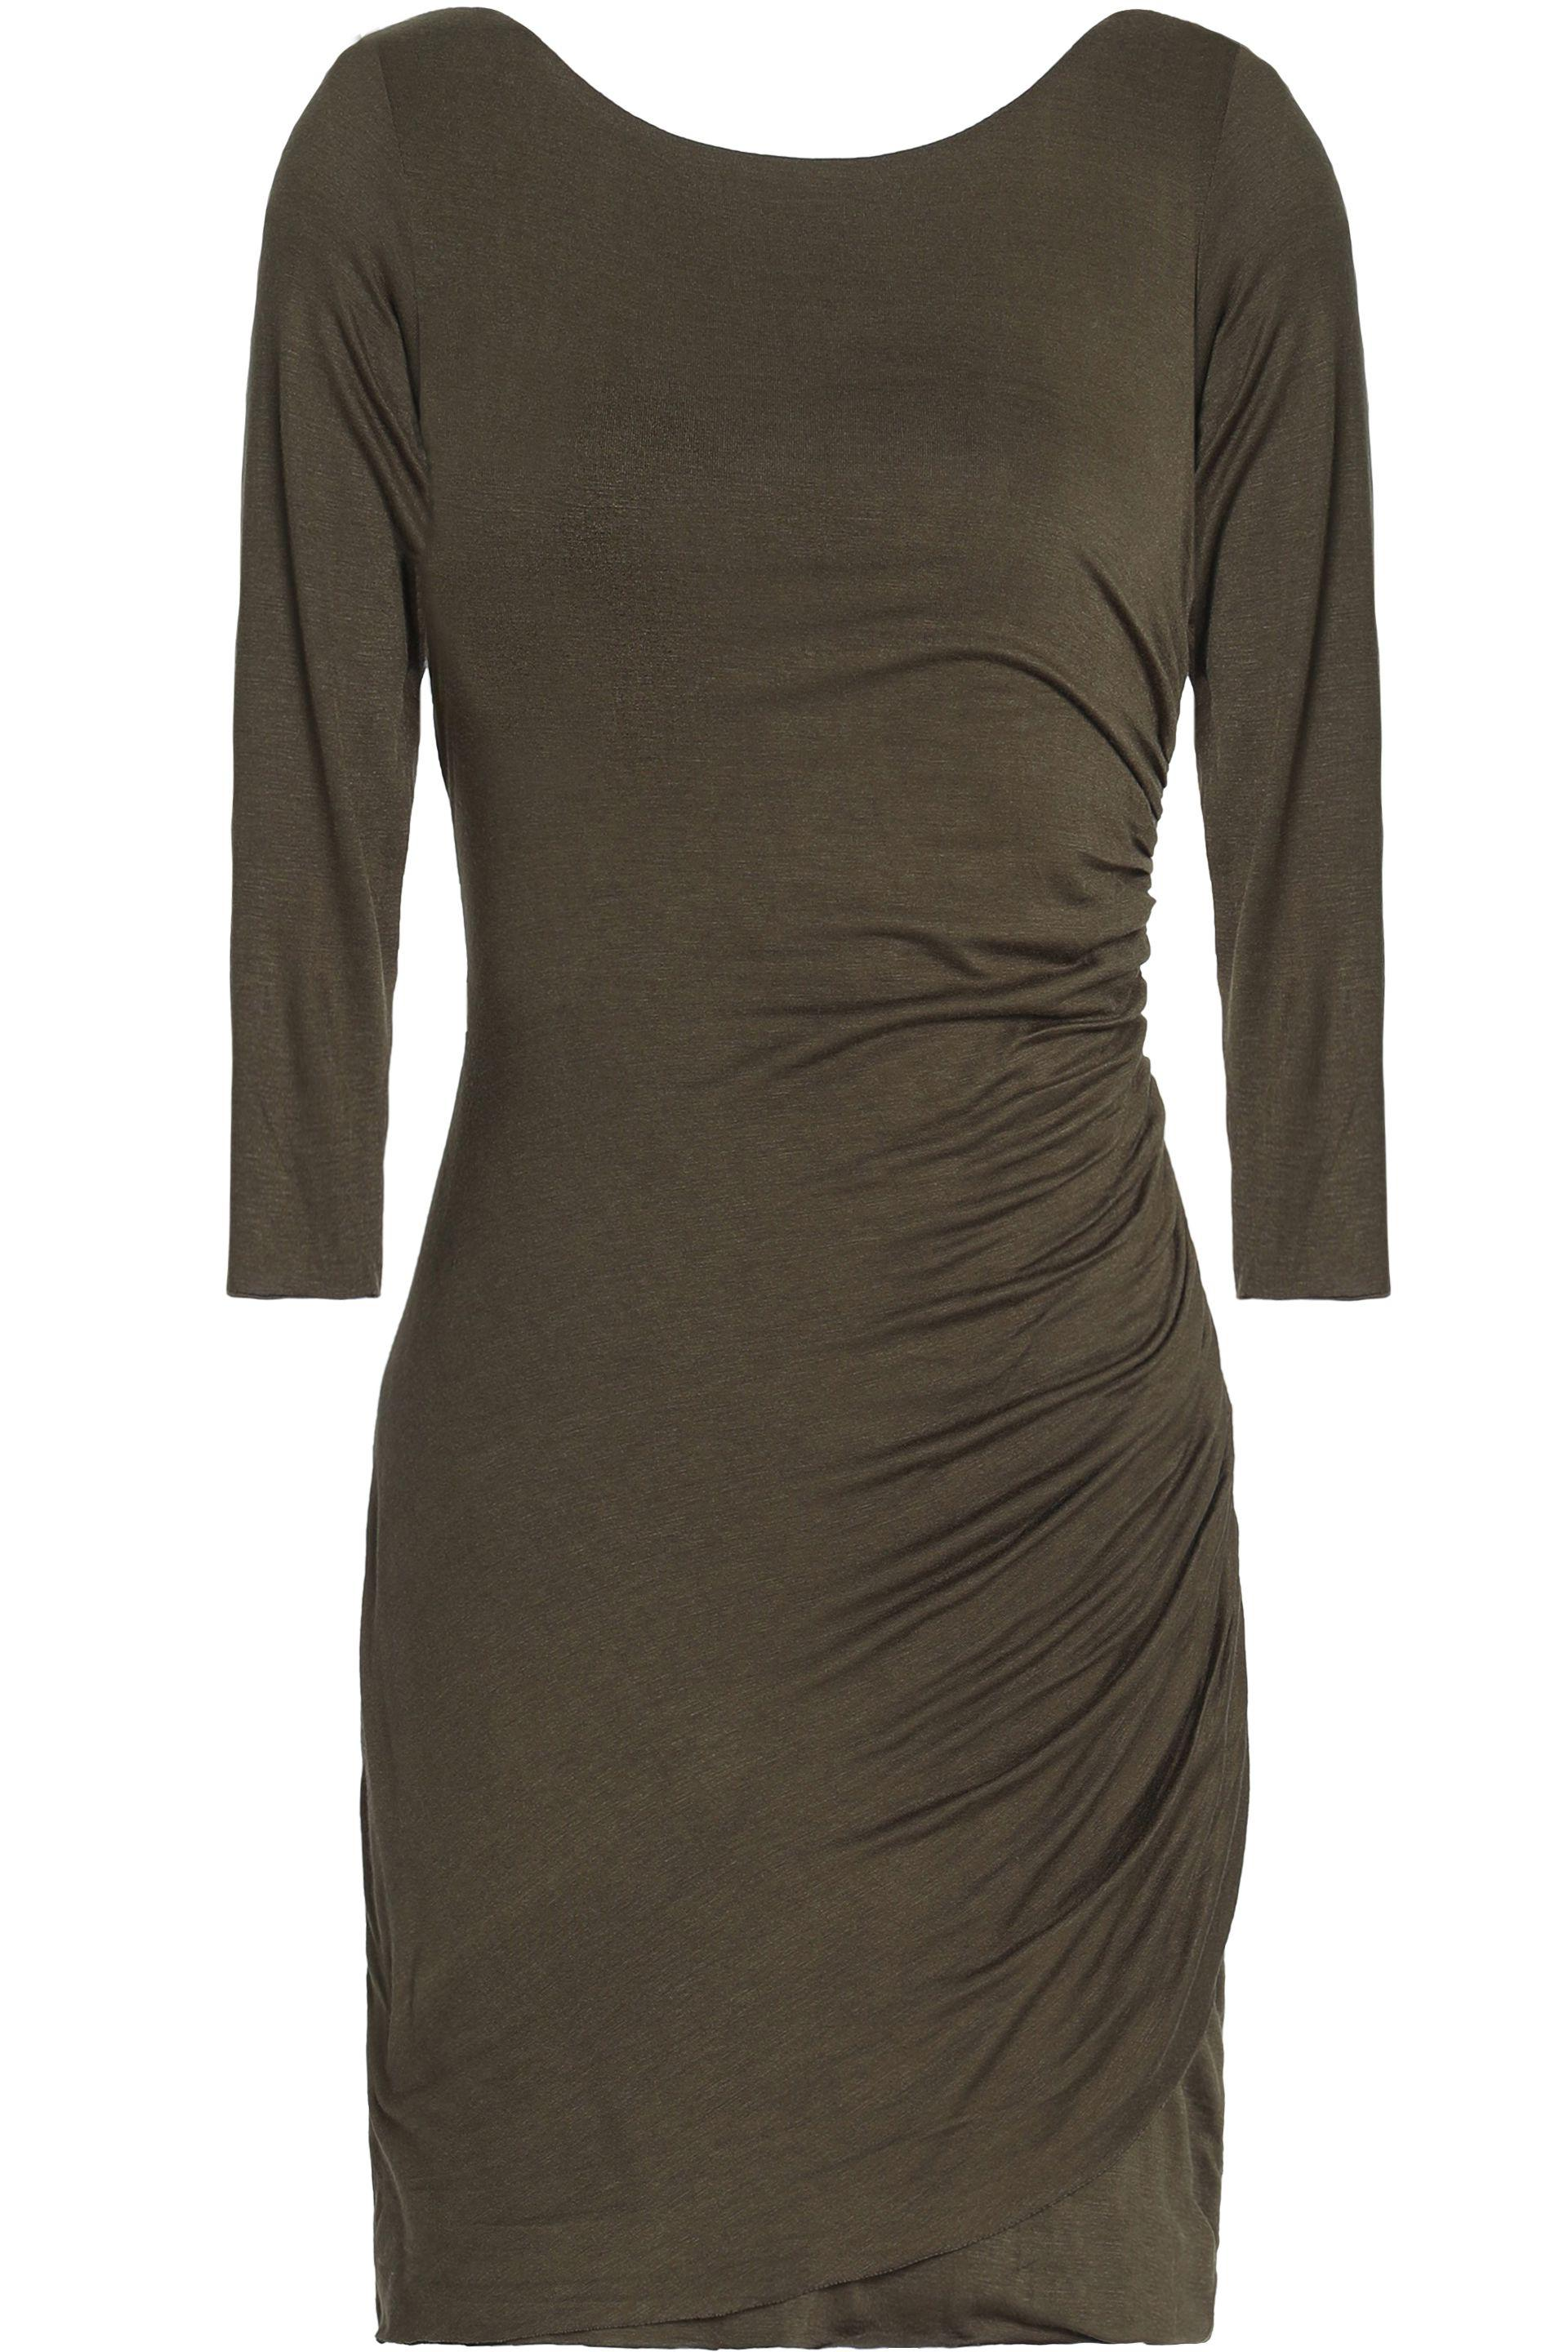 a427d609e69 Lyst - Bailey 44 Twist-back Ruched Stretch-jersey Mini Dress in Green